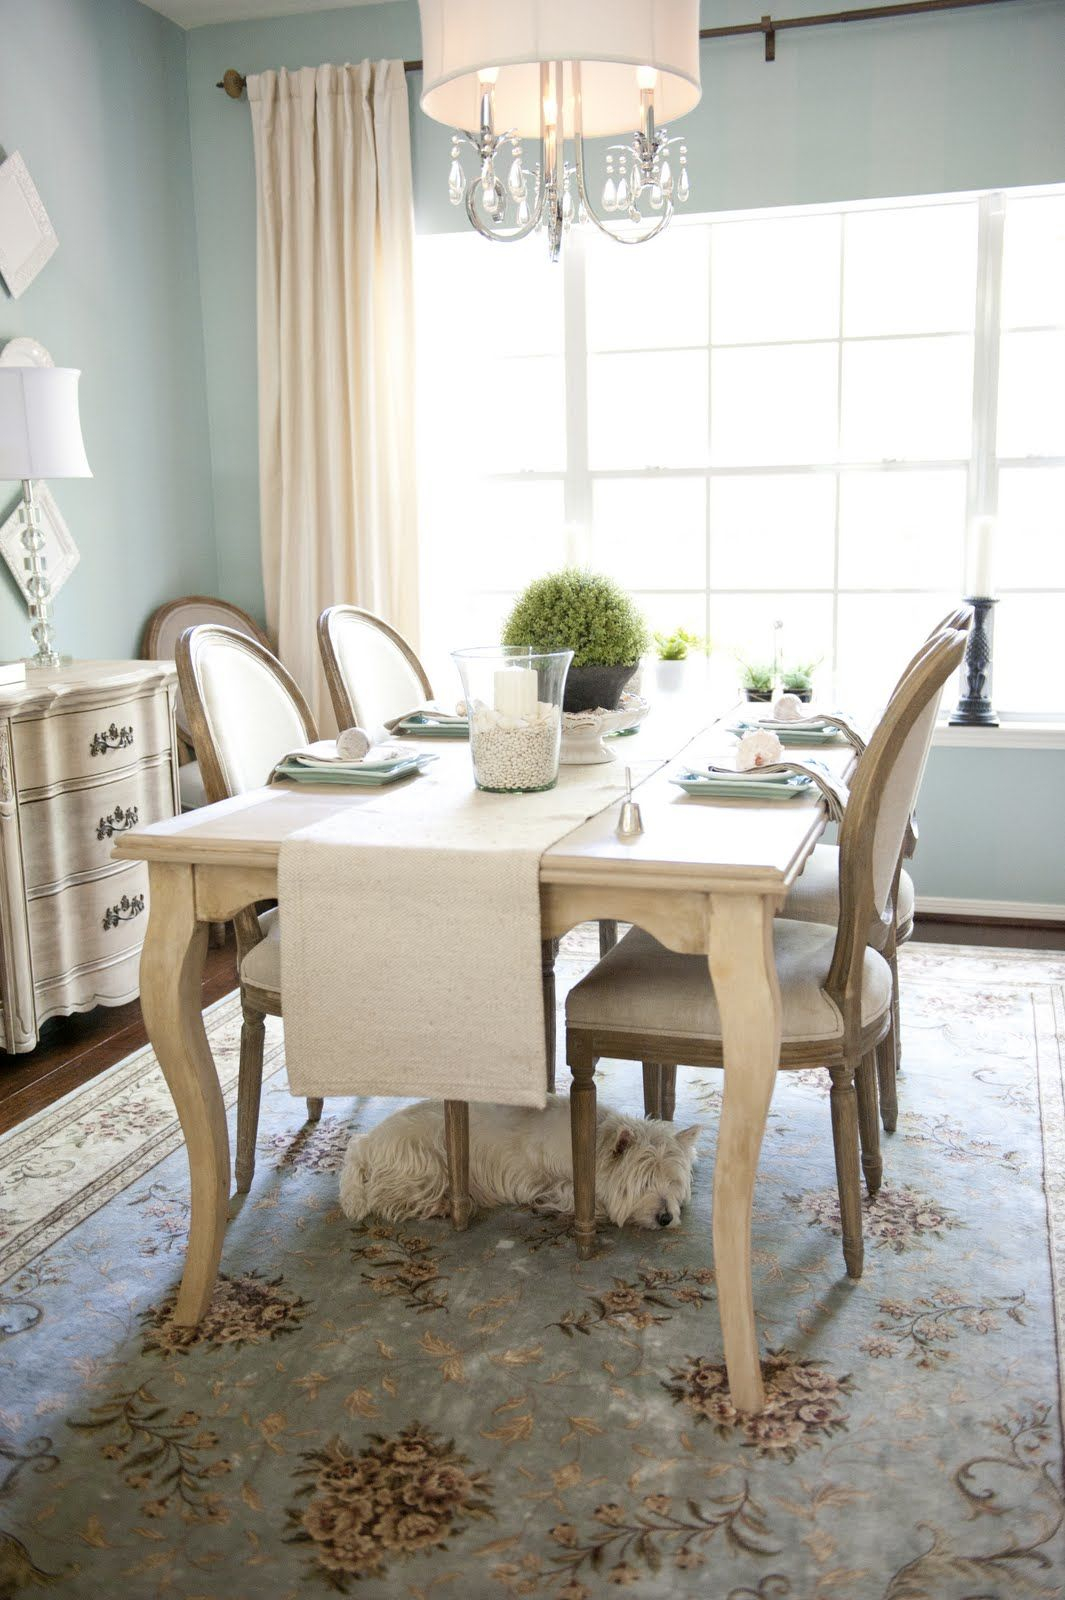 Glamorous Beautiful Kitchen Space. Especially Love The Westie Under The Table inside Review Light Blue Dining Room